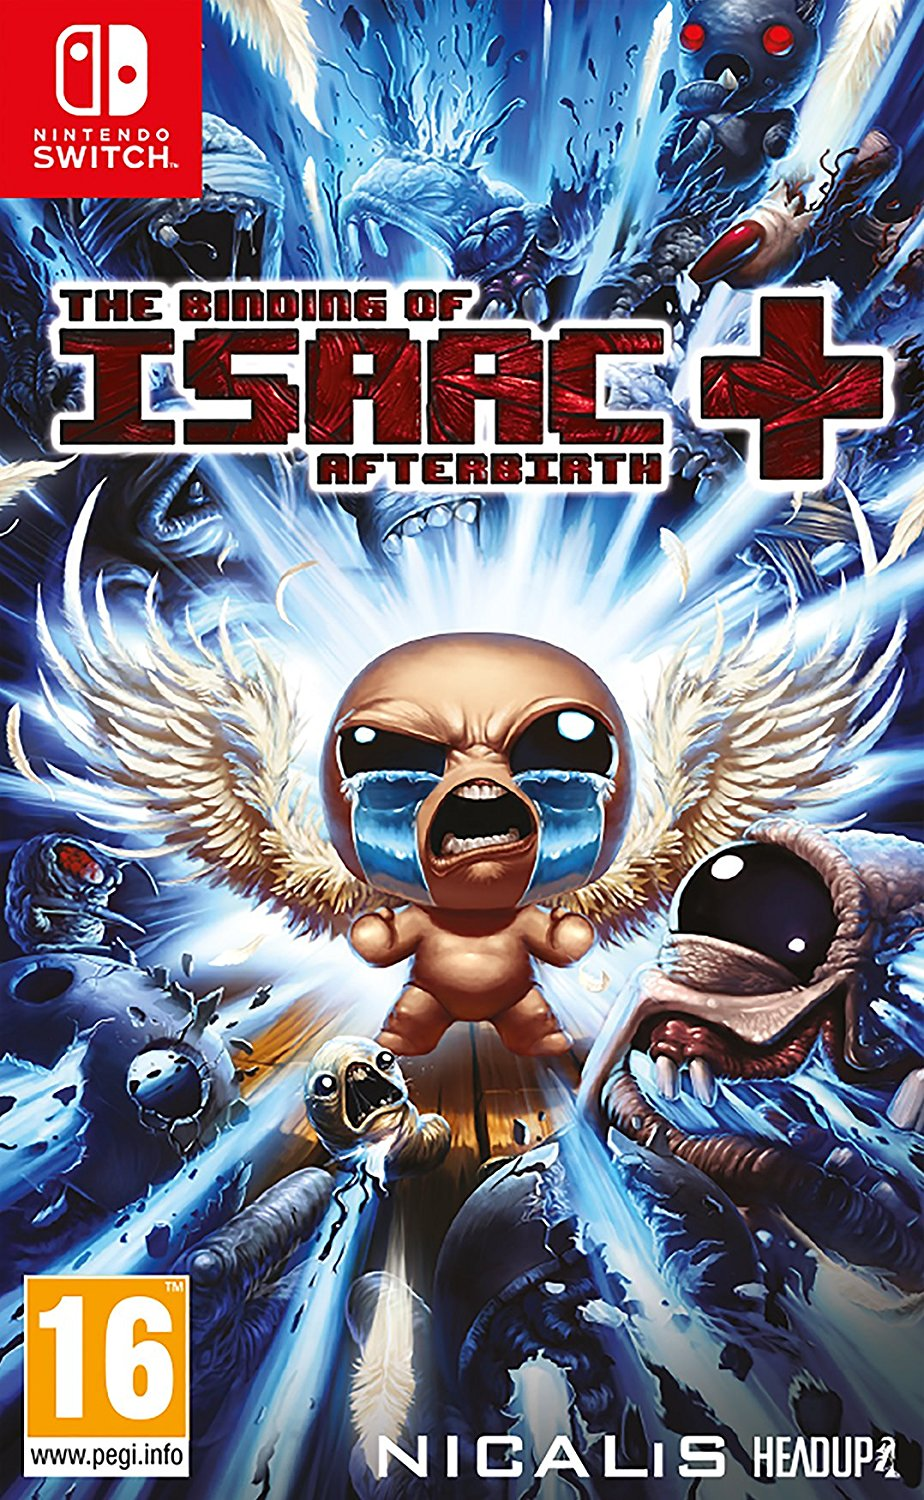 The Binding of Isaac: Afterbirth+ box art